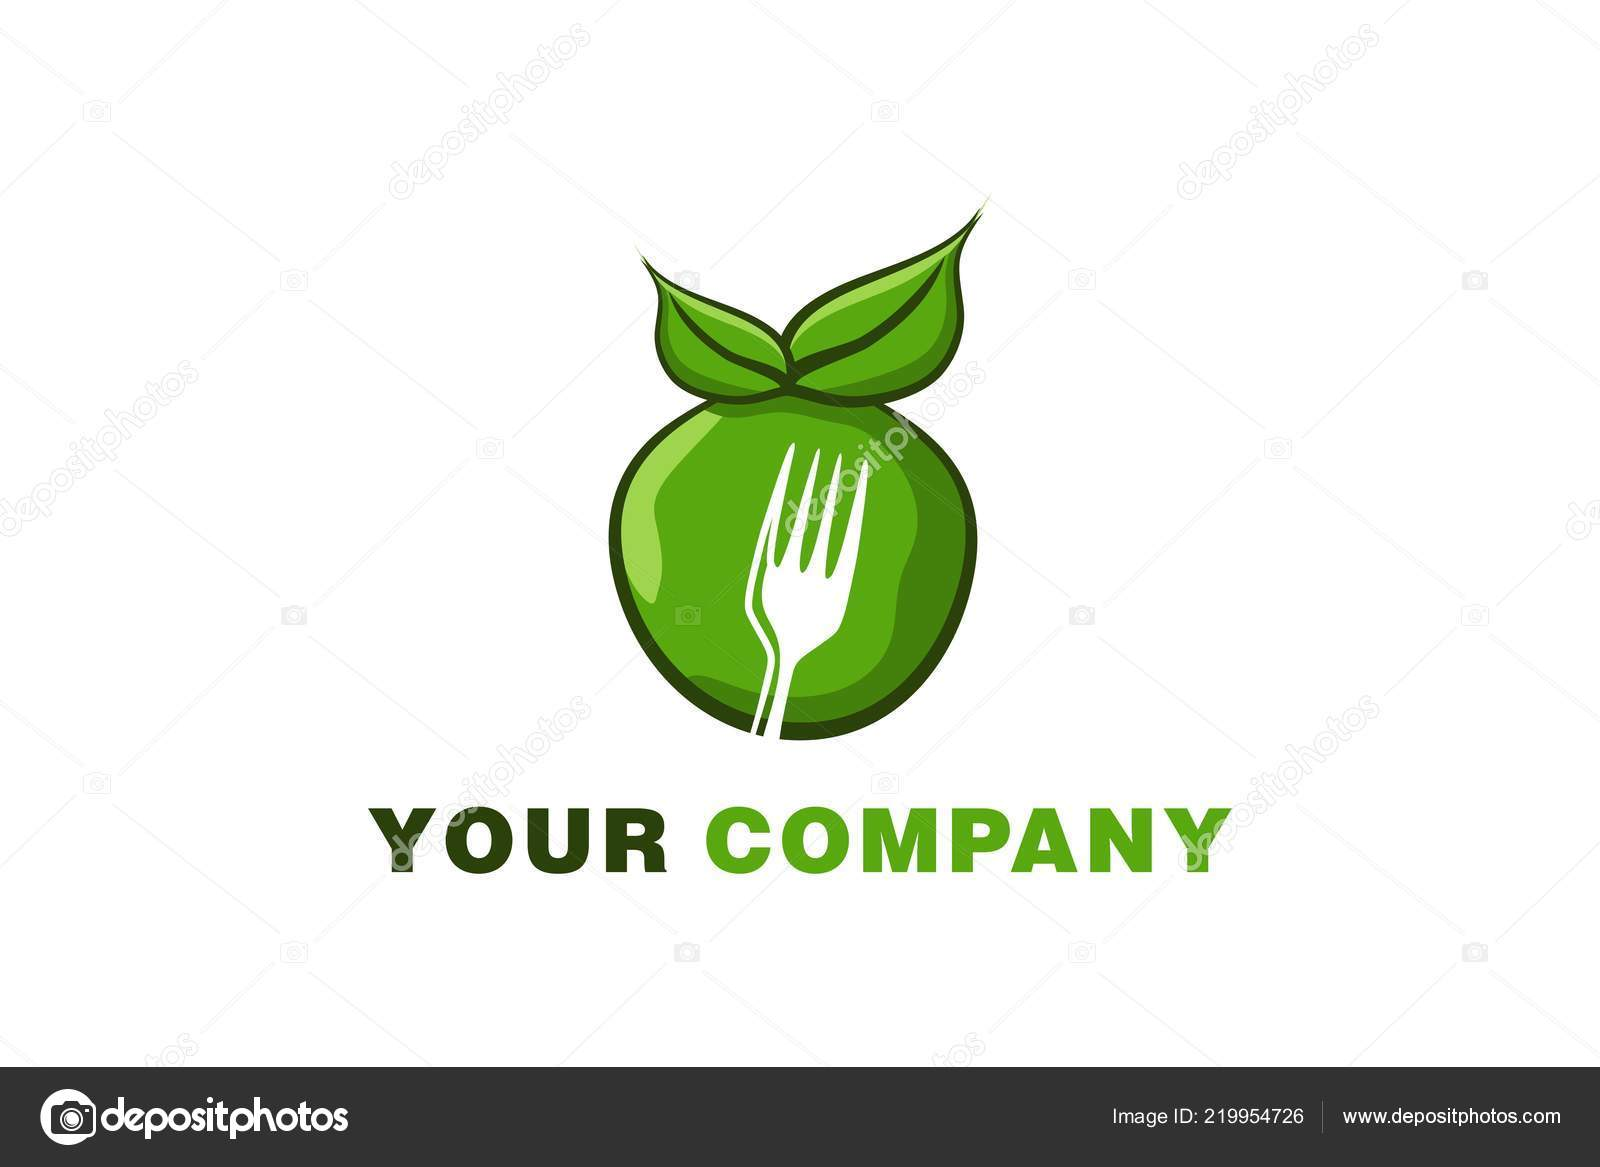 Green Apple Negative Space Fork Logo Designs Inspiration Isolated